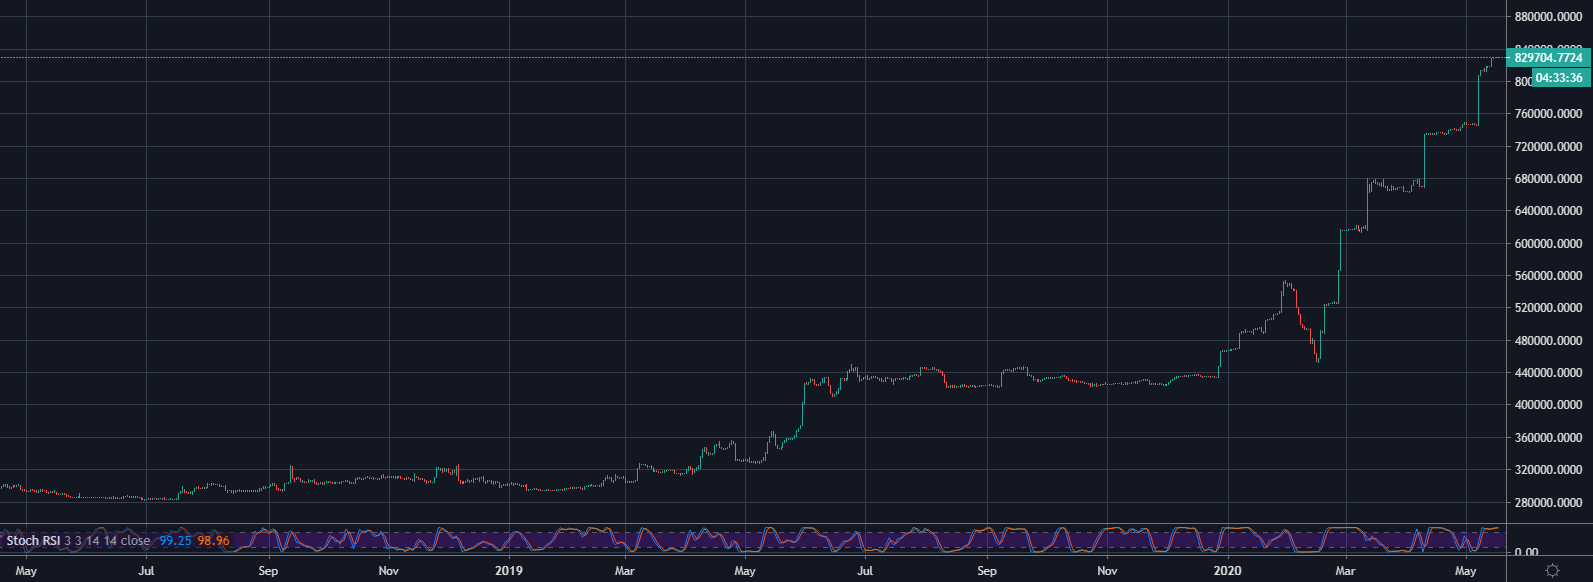 Bitfinex ETH/BTC Longs 1D May 2019 - May 2020: TradingView